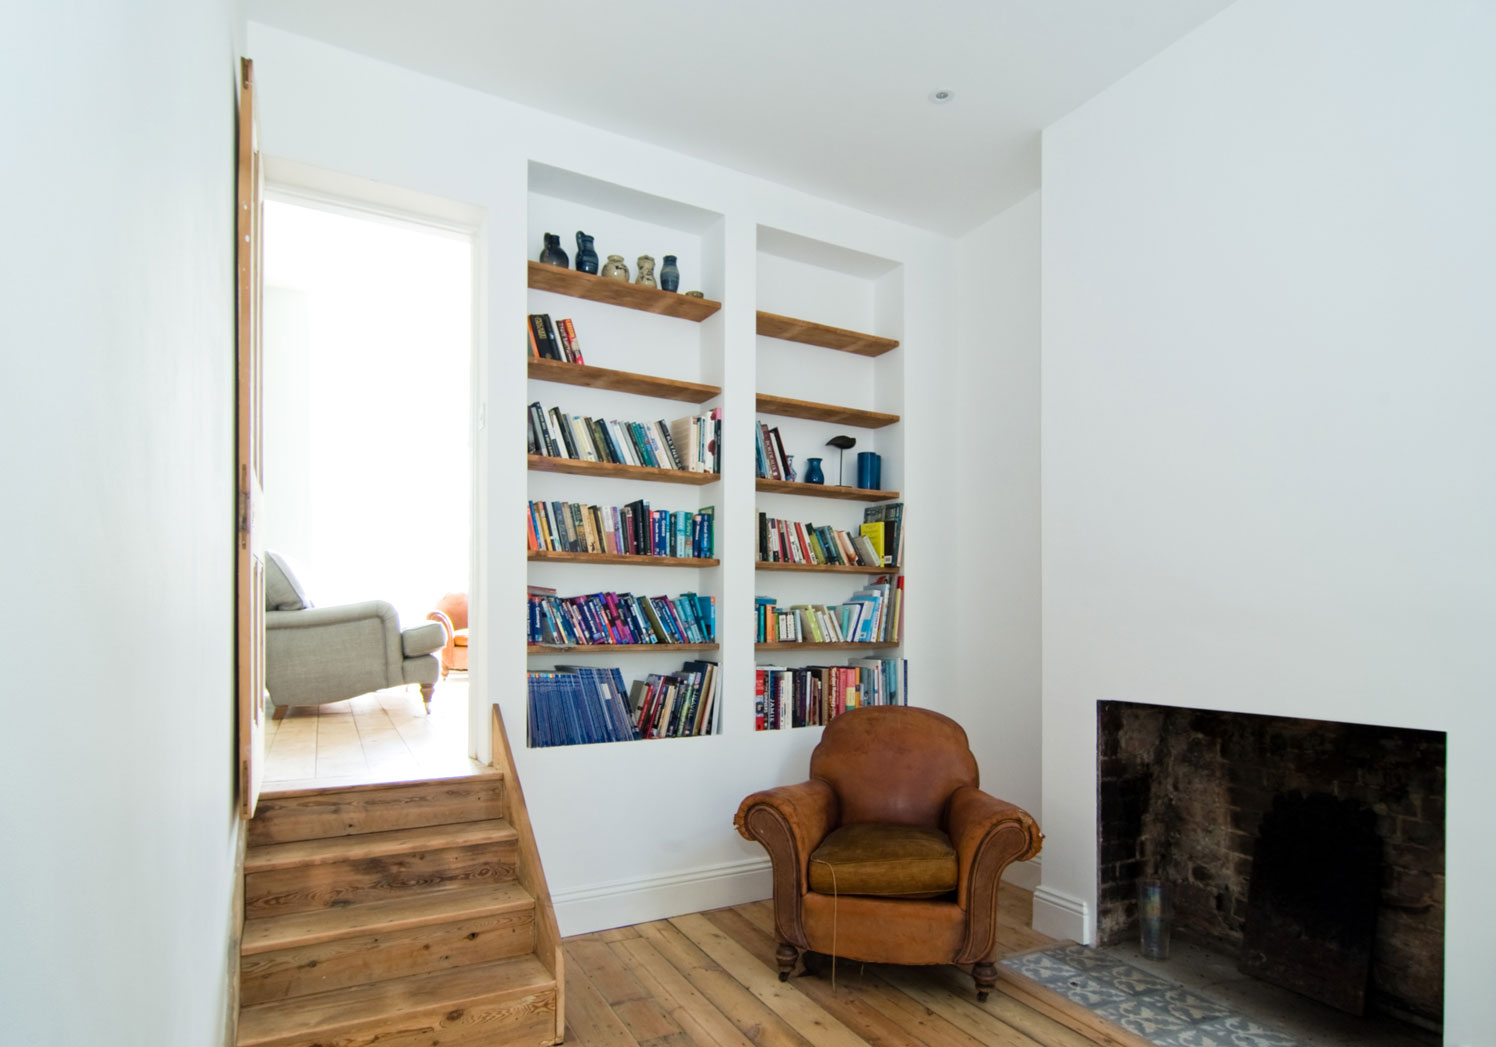 Rustic flooring and fireplace with a minimal bookshelf form a simple yet charismatic interior.